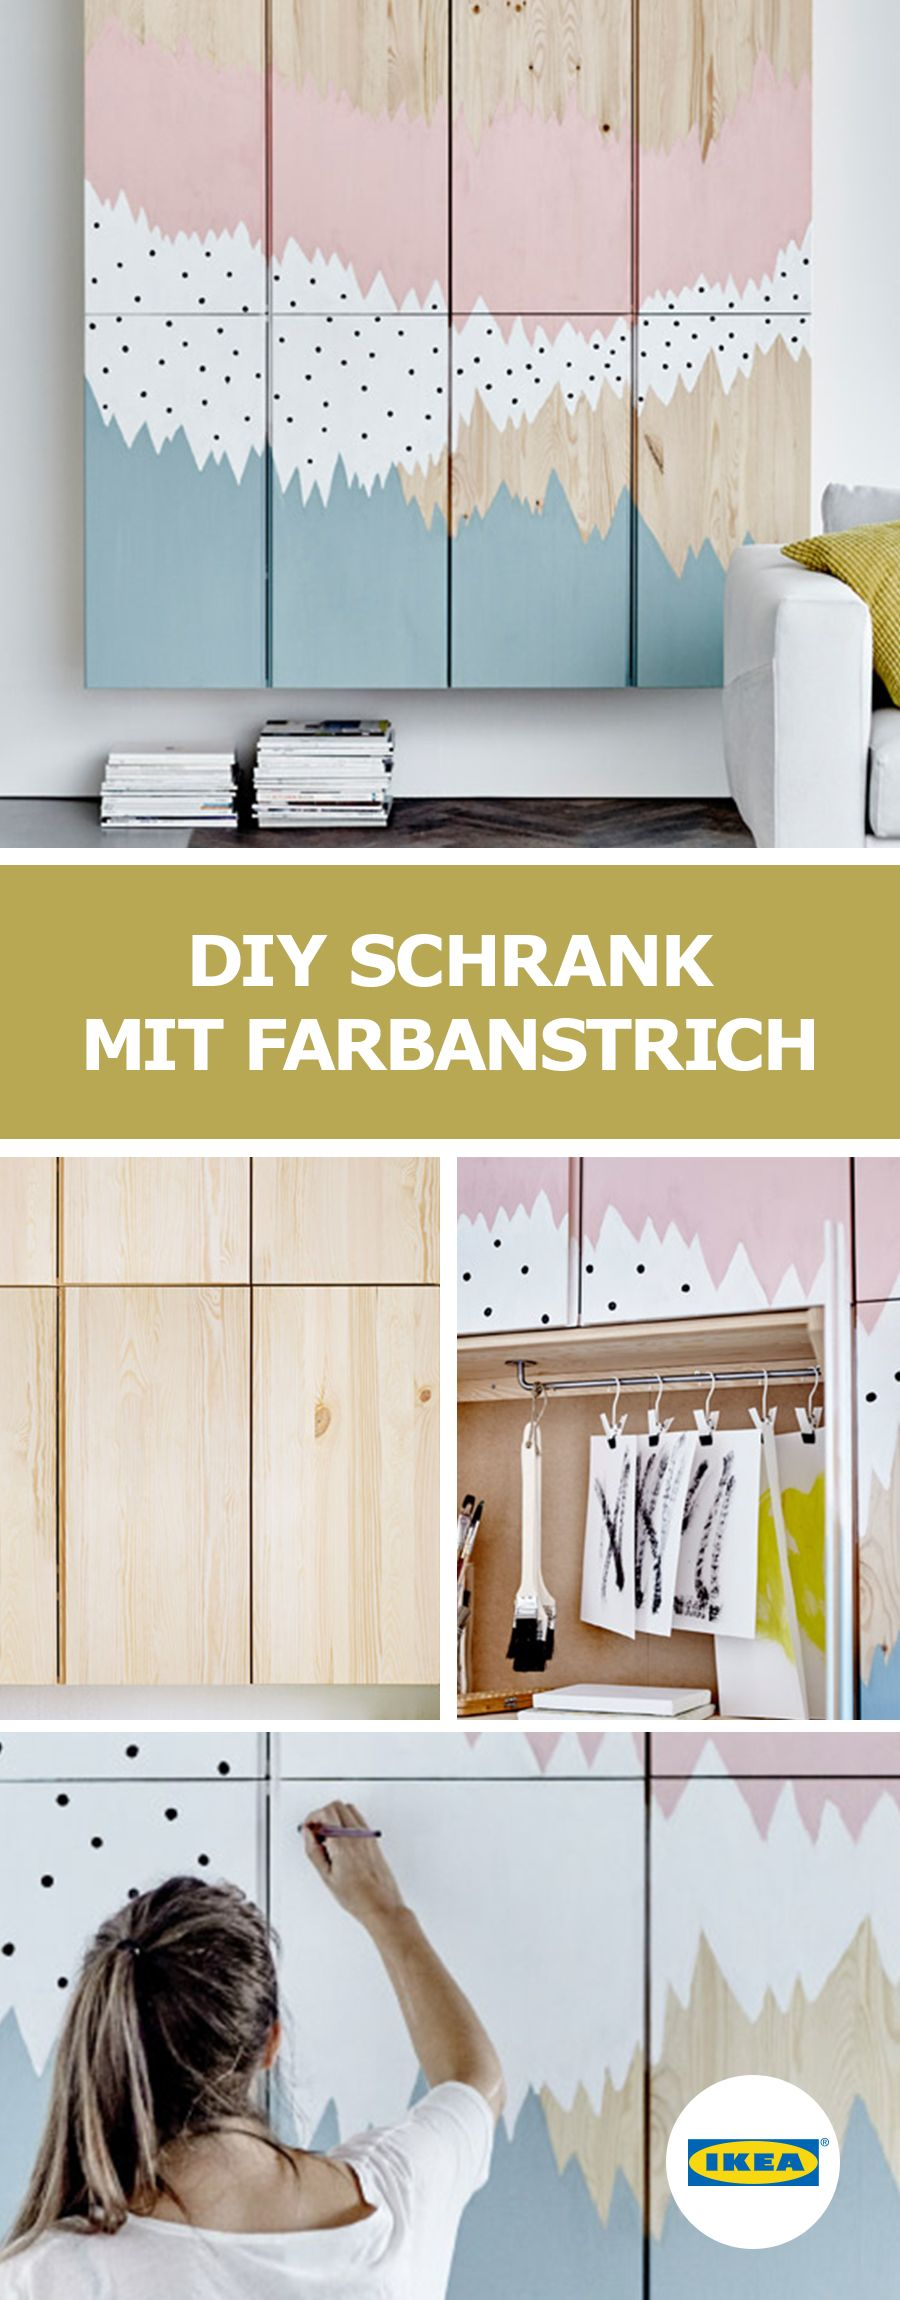 ikea deutschland diy schrank mit farbanstrich do it. Black Bedroom Furniture Sets. Home Design Ideas